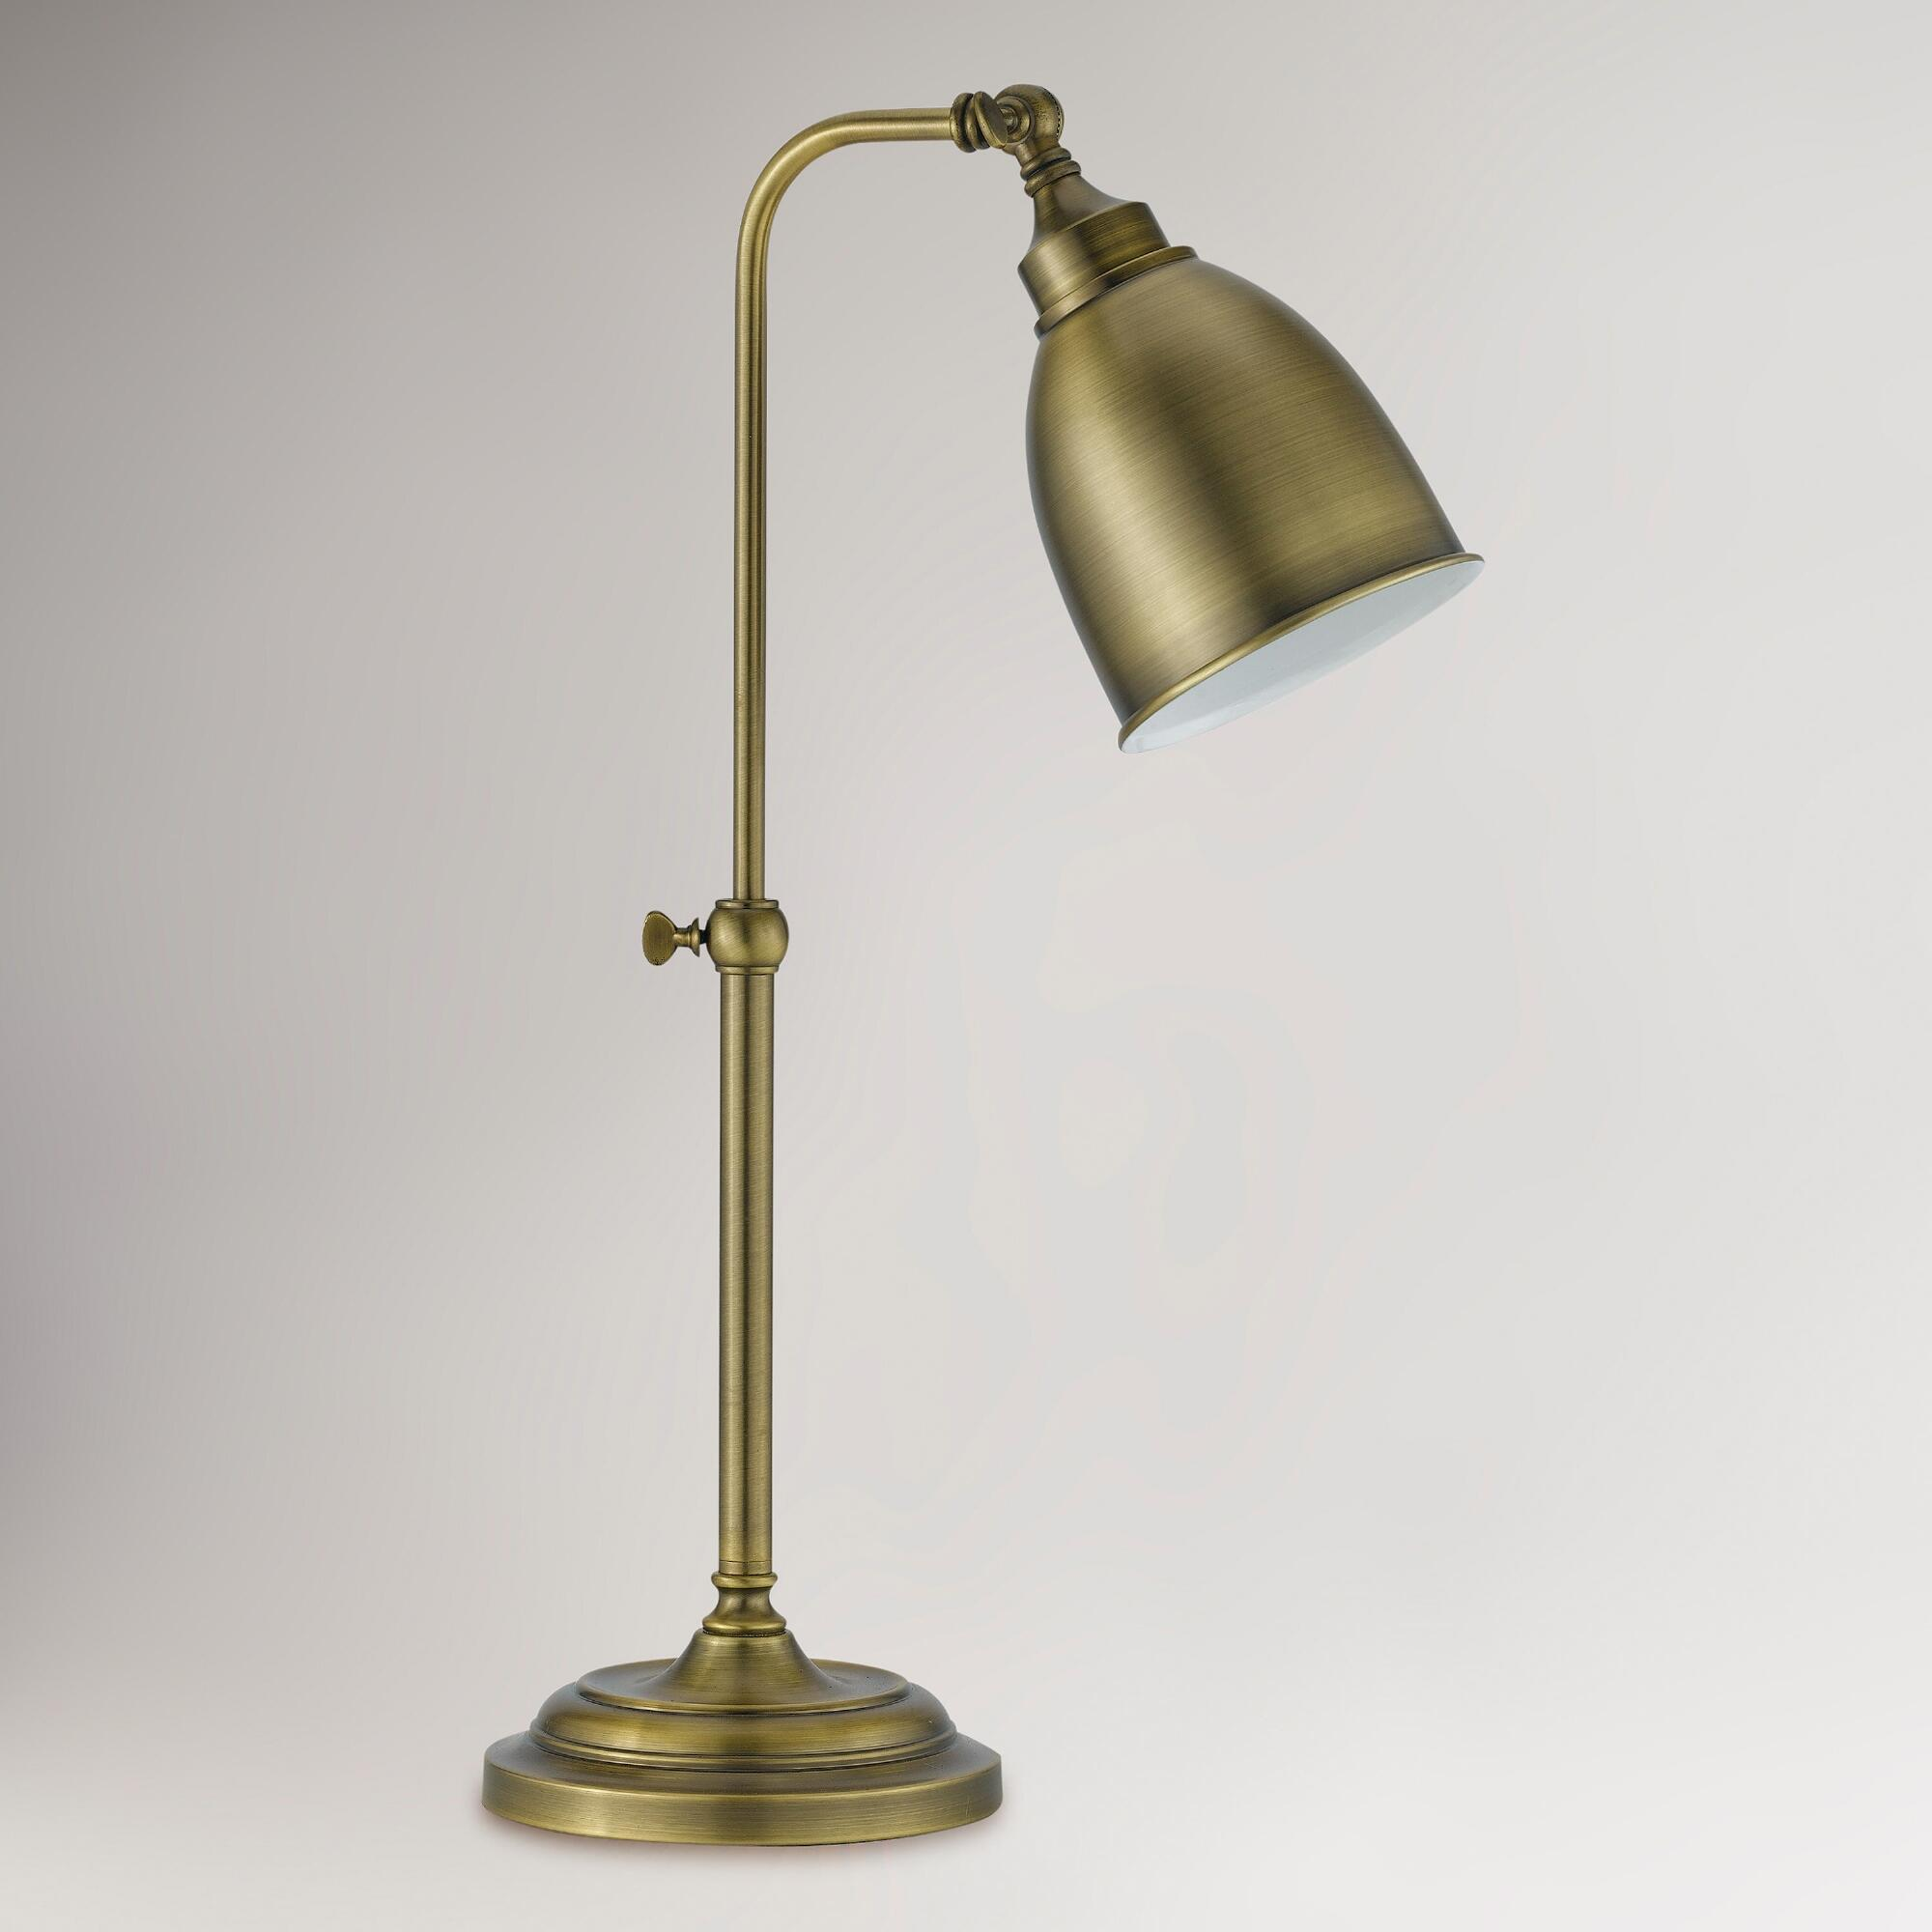 10 reasons to buy Antique bronze table lamp | Warisan Lighting